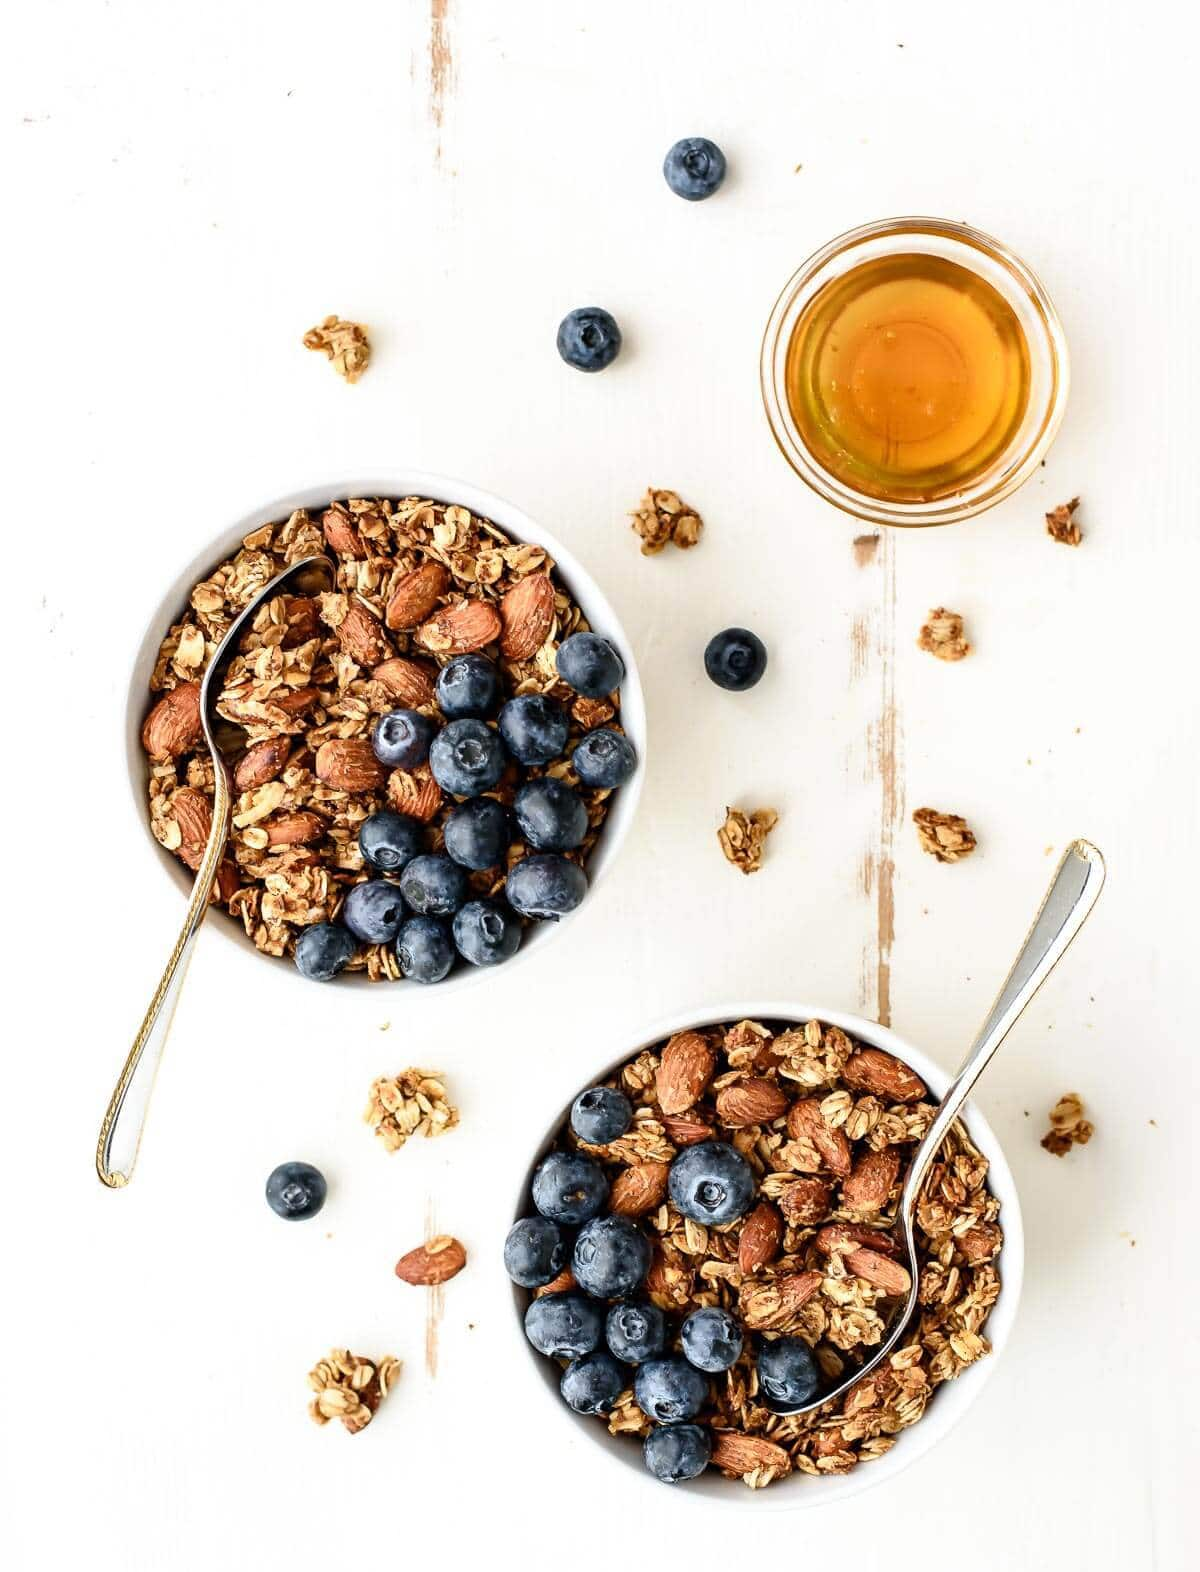 Two bowls of healthy granola with honey and blueberries